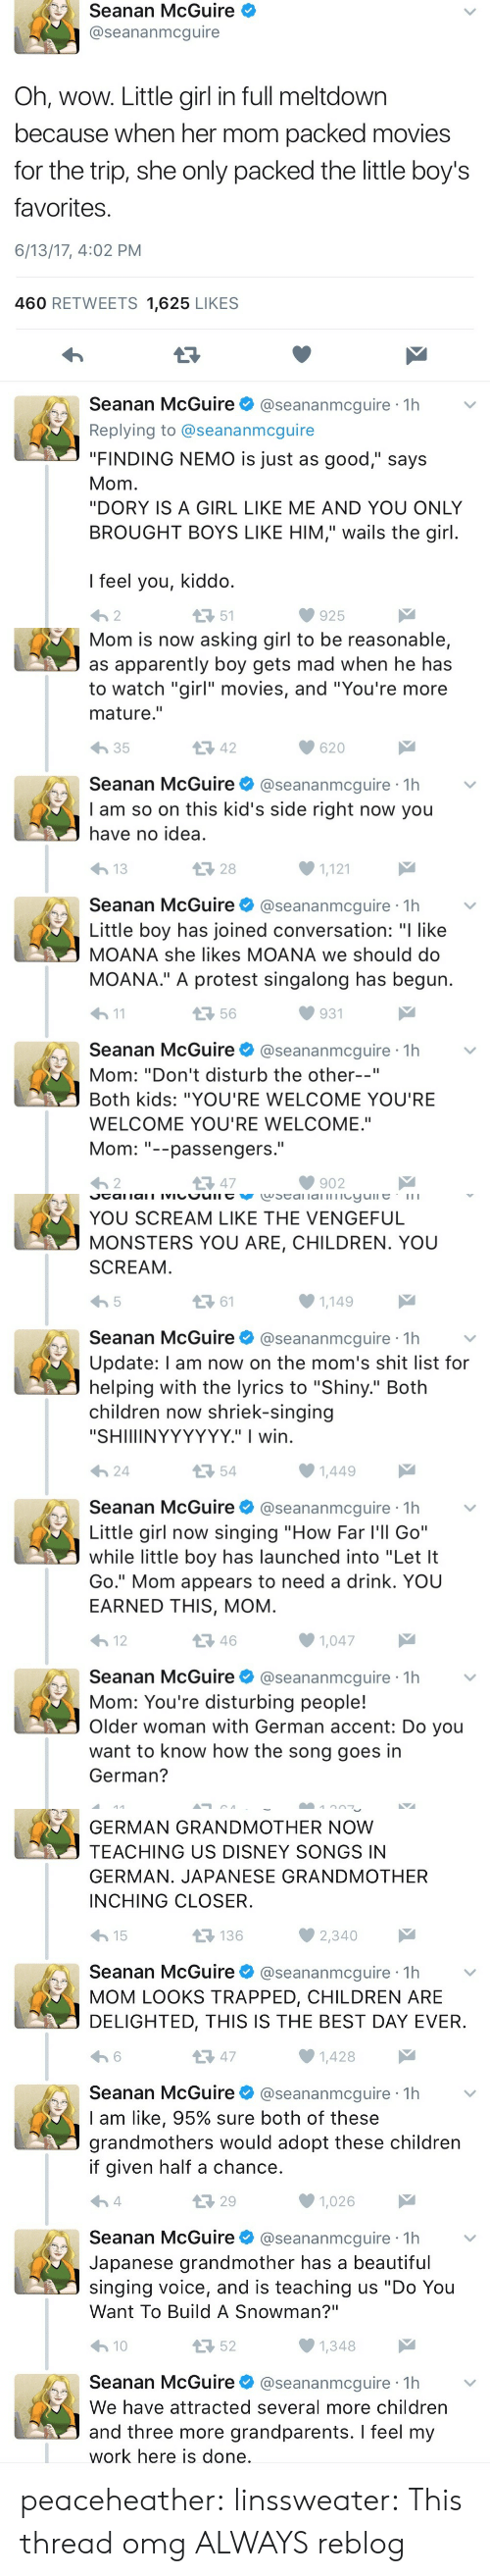 "Kiddo: Seanan McGuire  @seananmcguire  Oh, wow. Little girl in full meltdown  because when her mom packed movies  for the trip, she only packed the little boy's  favorites  6/13/17, 4:02 PM  460 RETWEETS 1,625 LIKES  Seanan McGuire@seananmcguire 1h  Replying to @seananmcguire  ""FINDING NEMO is just as good,"" says  Mom  ""DORY IS A GIRL LIKE ME AND YOU ONLY  BROUGHT BOYS LIKE HIM,"" wails the girl  I feel you, kiddo  わ2  51  925   Mom is now asking girl to be reasonable,  as apparently boy gets mad when he has  to watch ""girl"" movies, and ""You're more  mature.""  わ35  42  620  Seanan McGuire@seananmcguire 1h  I am so on this kid's side right now you  have no idea  28  1,121  Seanan McGuire@seananmcguire 1h  Little boy has joined conversation: ""I like  MOANA she likes MOANA we should do  MOANA."" A protest singalong has begun  h1  56  931  Seanan McGuire@seananmcguire 1h  Mom: ""Don't disturb the other--""  Both kids: ""YOU'RE WELCOME YOU'RE  WELCOME YOU'RE WELCOME.""  Mom--passengers.  わ2  다 47  902   YOU SCREAM LIKE THE VENGEFUL  MONSTERS YOU ARE, CHILDREN. YOU  SCREAM  ロ61  1,149  Seanan McGuire@seananmcguire 1h  Update: l am now on the mom's shit list for  helping with the lyrics to ""Shiny."" Both  children now shriek-singing  ""SHIIIINYYYYYY."" I wirn  24  54  Seanan McGuireネ@seananmcgure·1h  Little girl now singing ""How Far l'll Go""  while little boy has launched into ""Let It  Go."" Mom appears to need a drink. YOU  EARNED THIS, MOM  12  46  1,047  Seanan McGuire@seananmcguire 1h  Mom: You're disturbing people!  Older woman with German accent: Do you  want to know how the song goes in  German?   GERMAN GRANDMOTHER NOW  TEACHING US DISNEY SONGS IN  GERMAN. JAPANESE GRANDMOTHER  INCHING CLOSER  15  136  Seanan McGuire@seananmcguire 1h  MOM LOOKS TRAPPED, CHILDREN ARE  DELIGHTED, THIS IS THE BEST DAY EVER  13 47  1,428  Seanan McGuire@seananmcguire 1h  I am like, 95% sure both of these  grandmothers would adopt these children  if given half a chance  29  1,026  Seanan McGuire @seananmcguire·1h  Japanese grandmother has a beautiful  singing voice, and is teaching us ""Do You  Want To Build A Snowman?""  10  52  Seanan McGuire@seananmcguire 1h  We have attracted several more children  and three more grandparents. I feel my  work here is done peaceheather:  linssweater: This thread omg ALWAYS reblog"